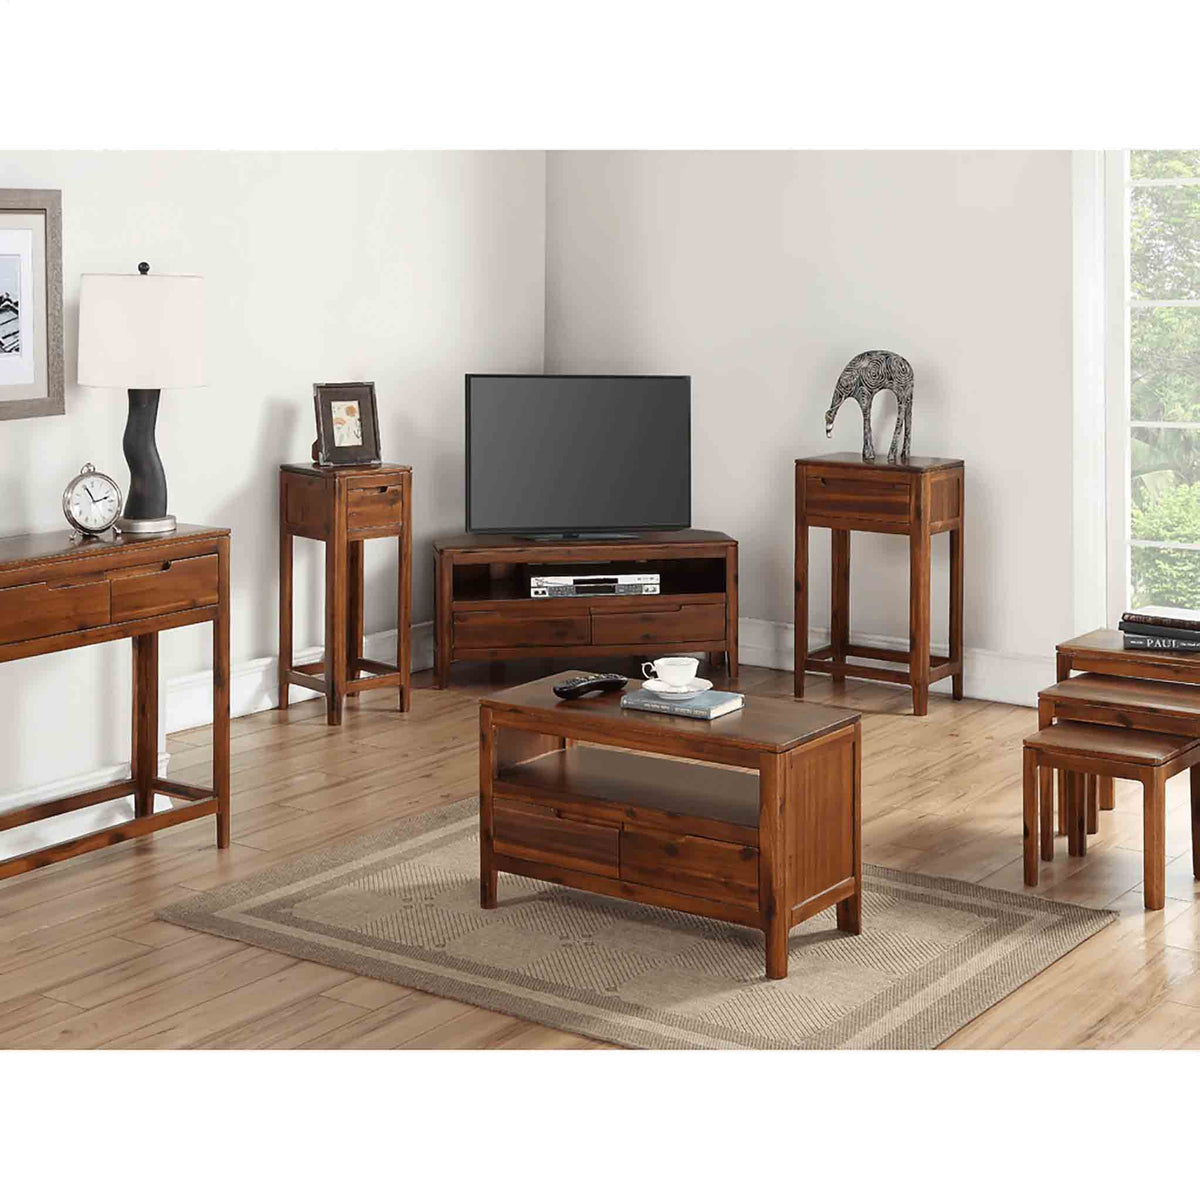 Lifesytle image with The Dunmore Acacia Dark Wood Nesting Tables from Roseland Furniture